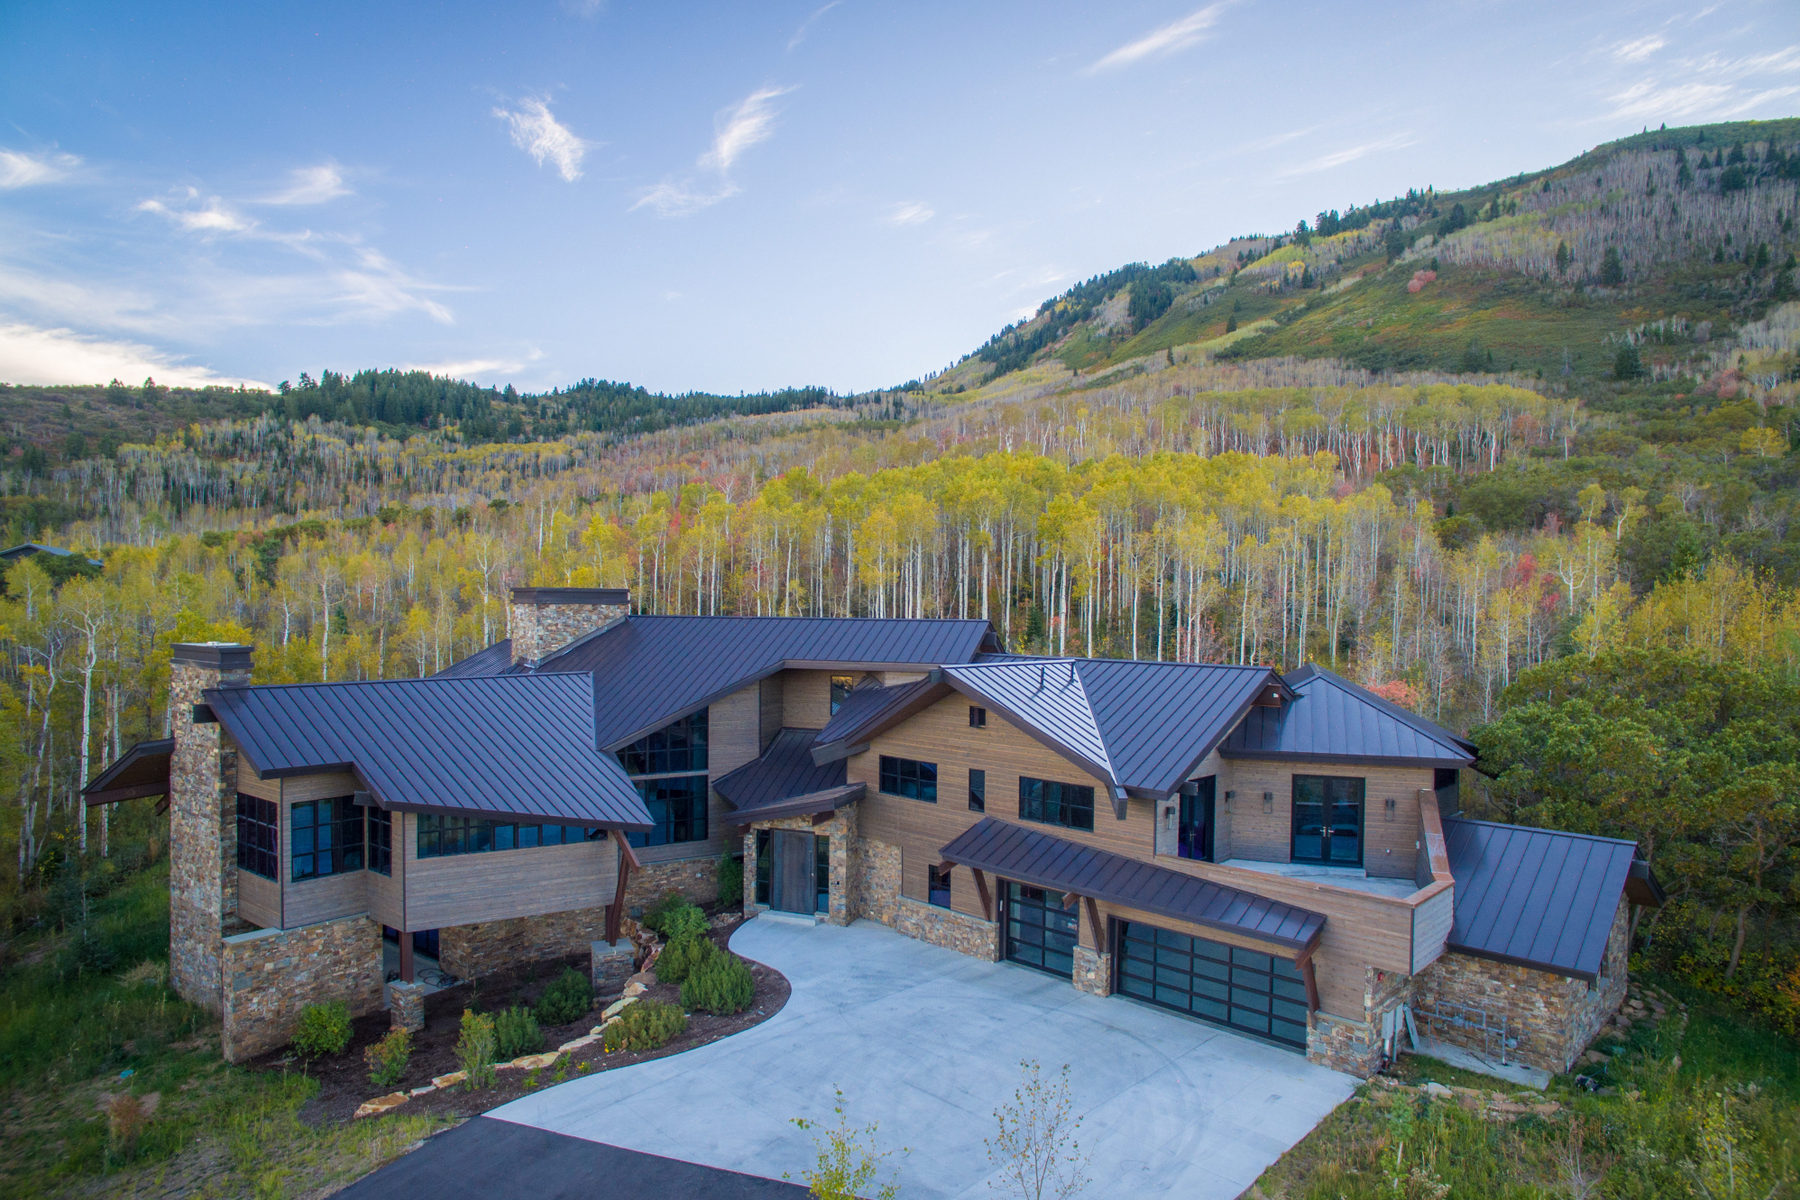 단독 가정 주택 용 매매 에 Newly Finished Mountain Contemporary Masterpiece 21 Canyon Ct Park City, 유타, 84060 미국